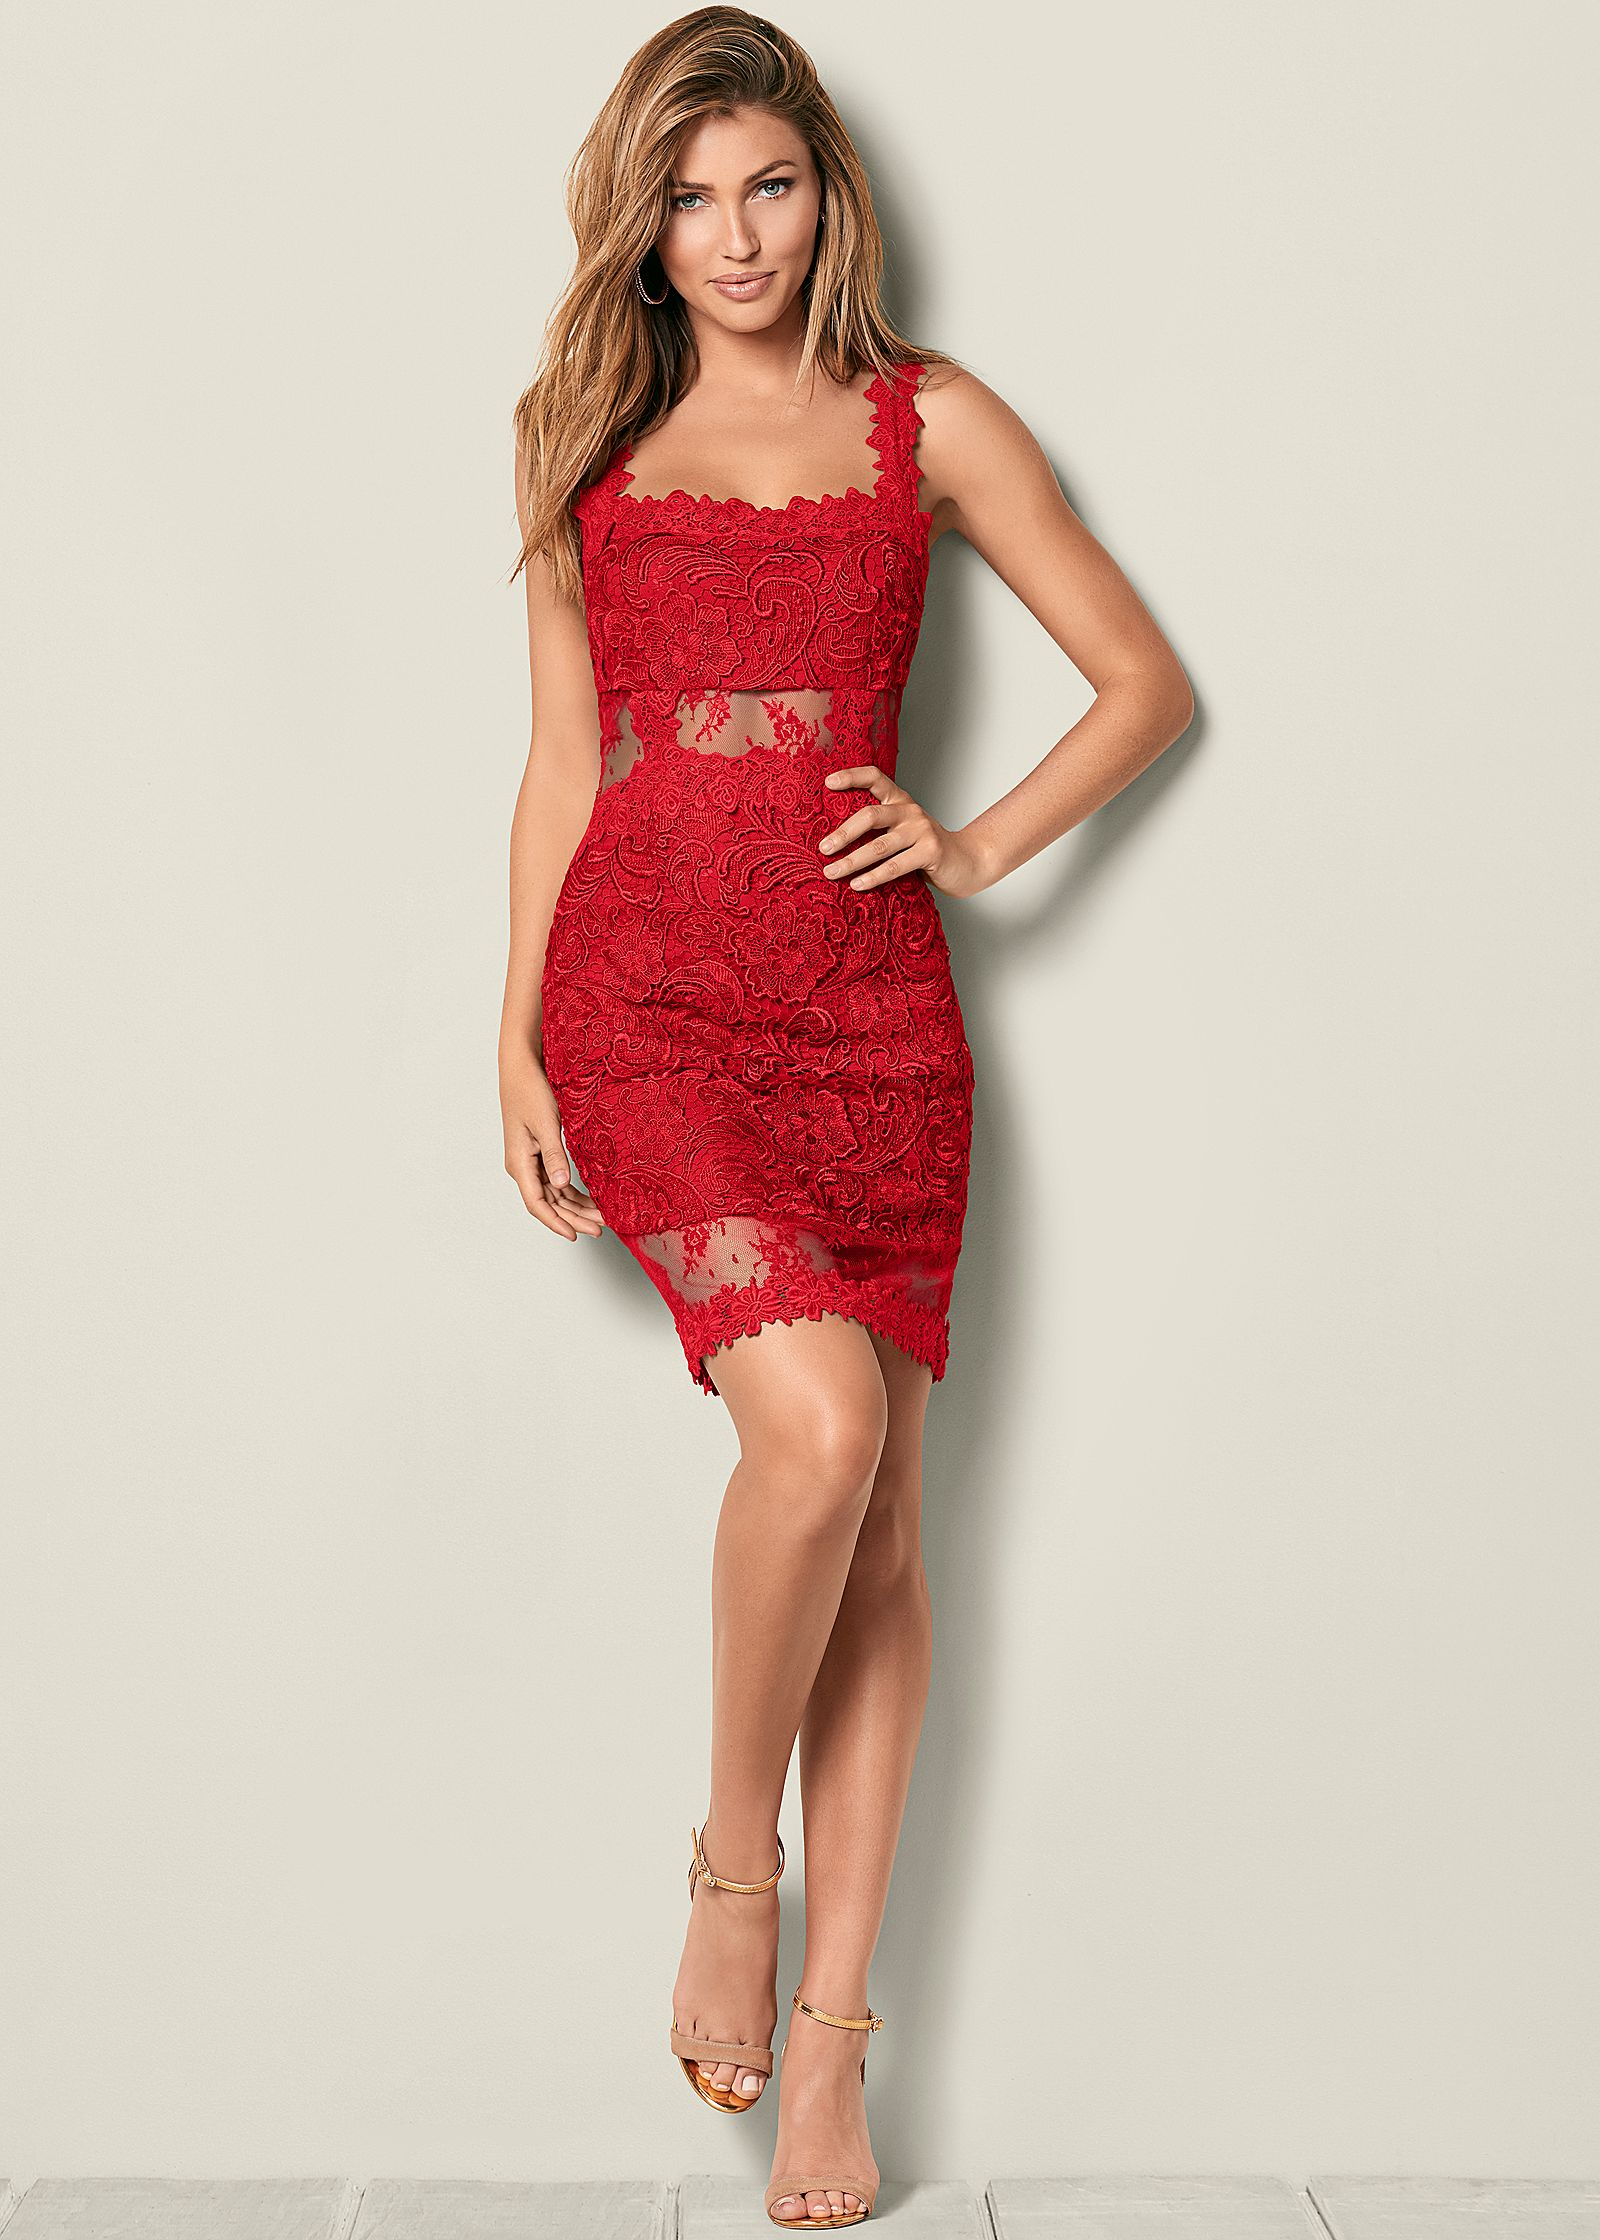 Red cocktail dresses – a chic eye-catcher